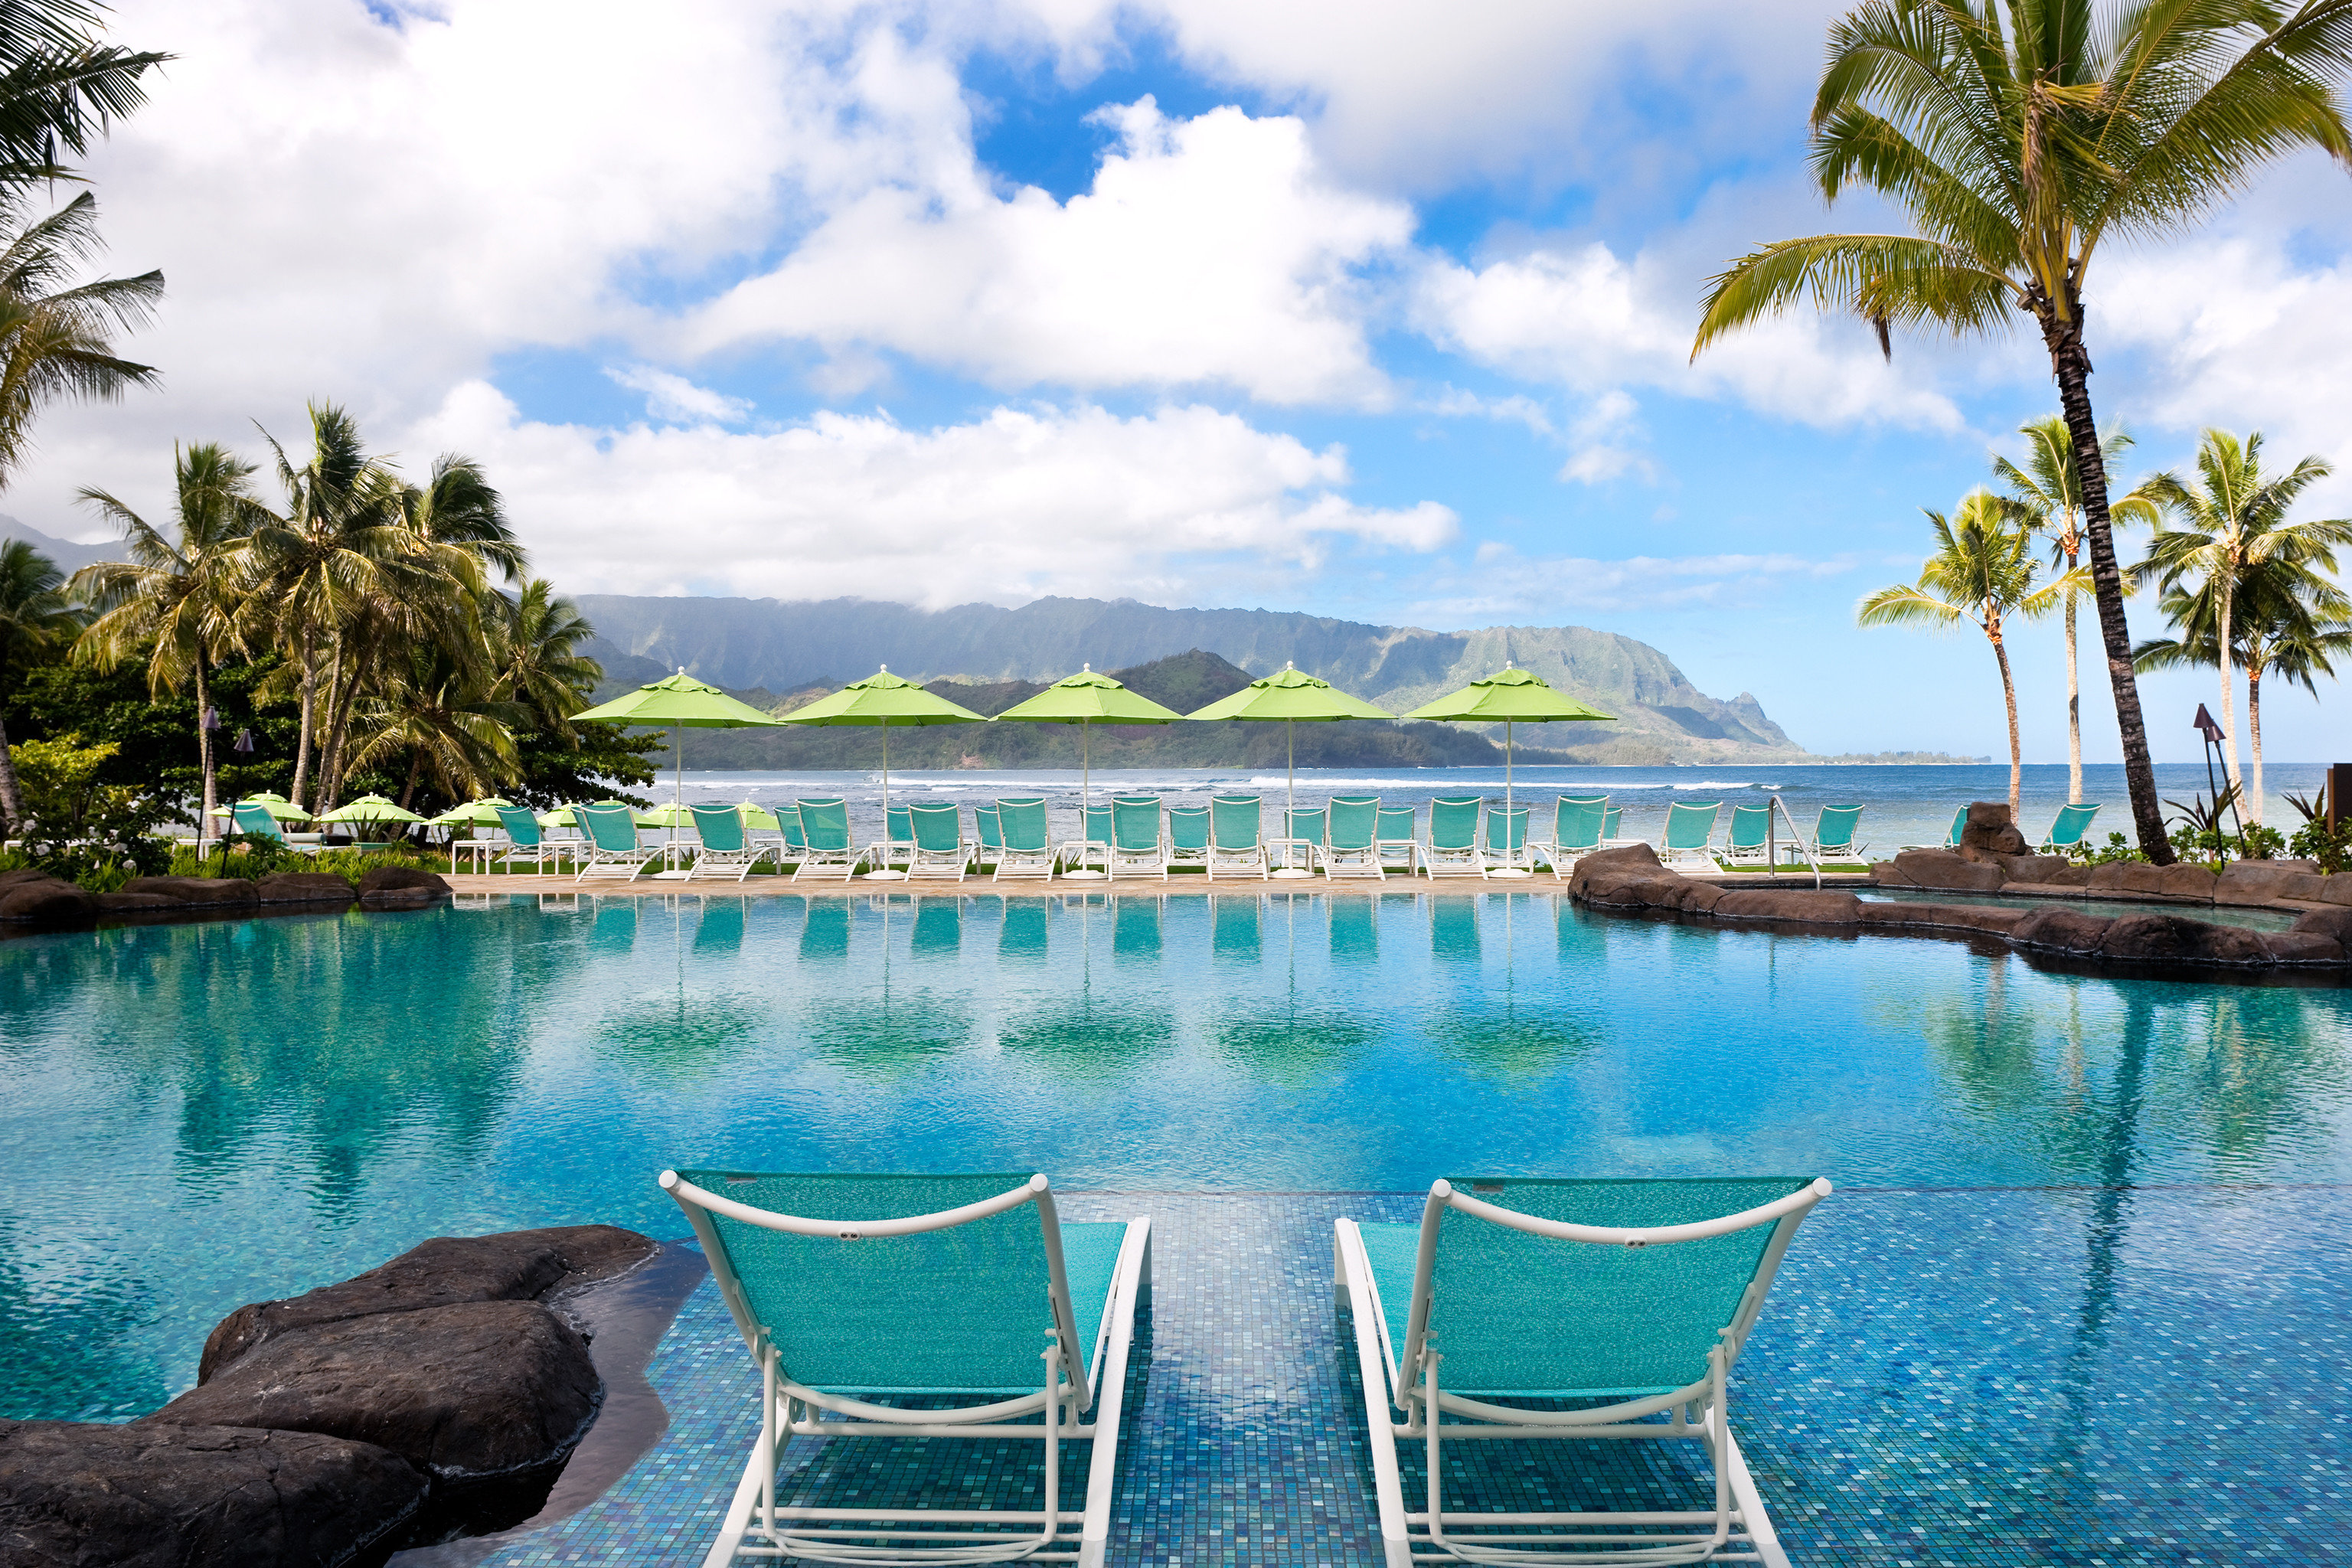 Beach Beachfront Hotels Lounge Luxury Modern Pool Trip Ideas water sky outdoor tree Boat Lake swimming pool leisure River Resort vacation caribbean estate Nature Lagoon bay Sea shore empty lined swimming surrounded